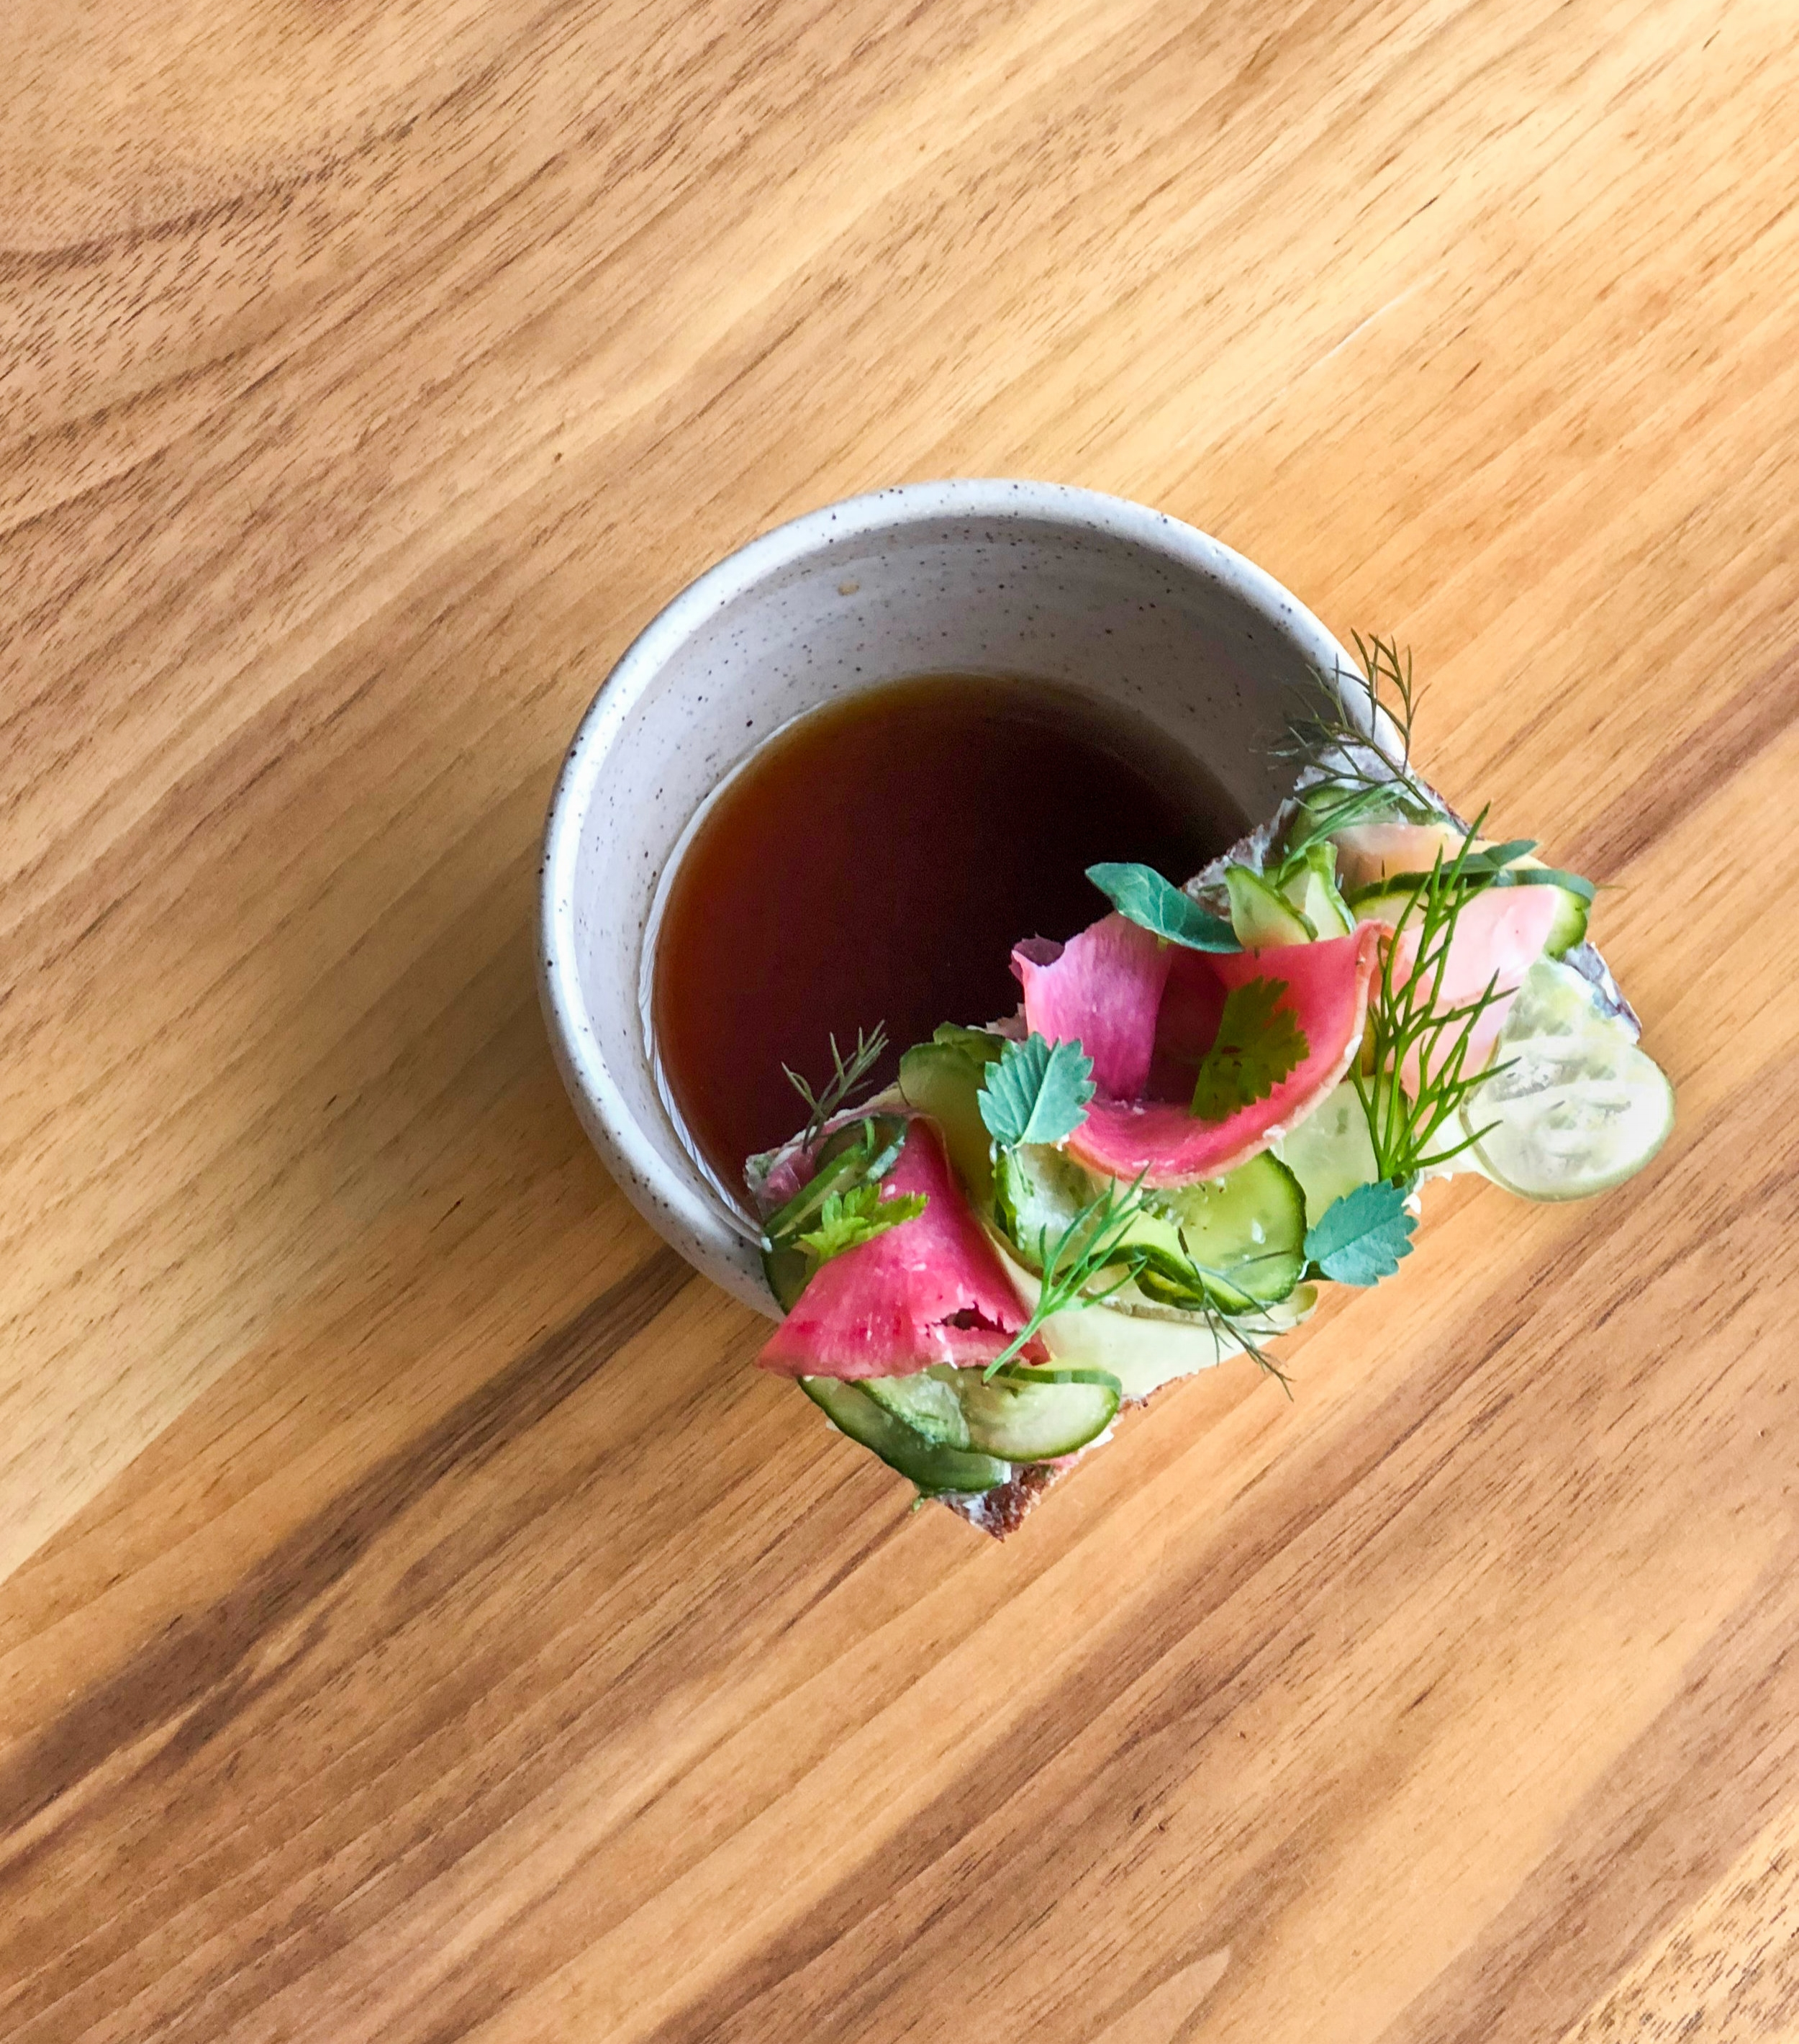 Tea of lightly smoked Imperfect fruits and vegetables, with radish toast